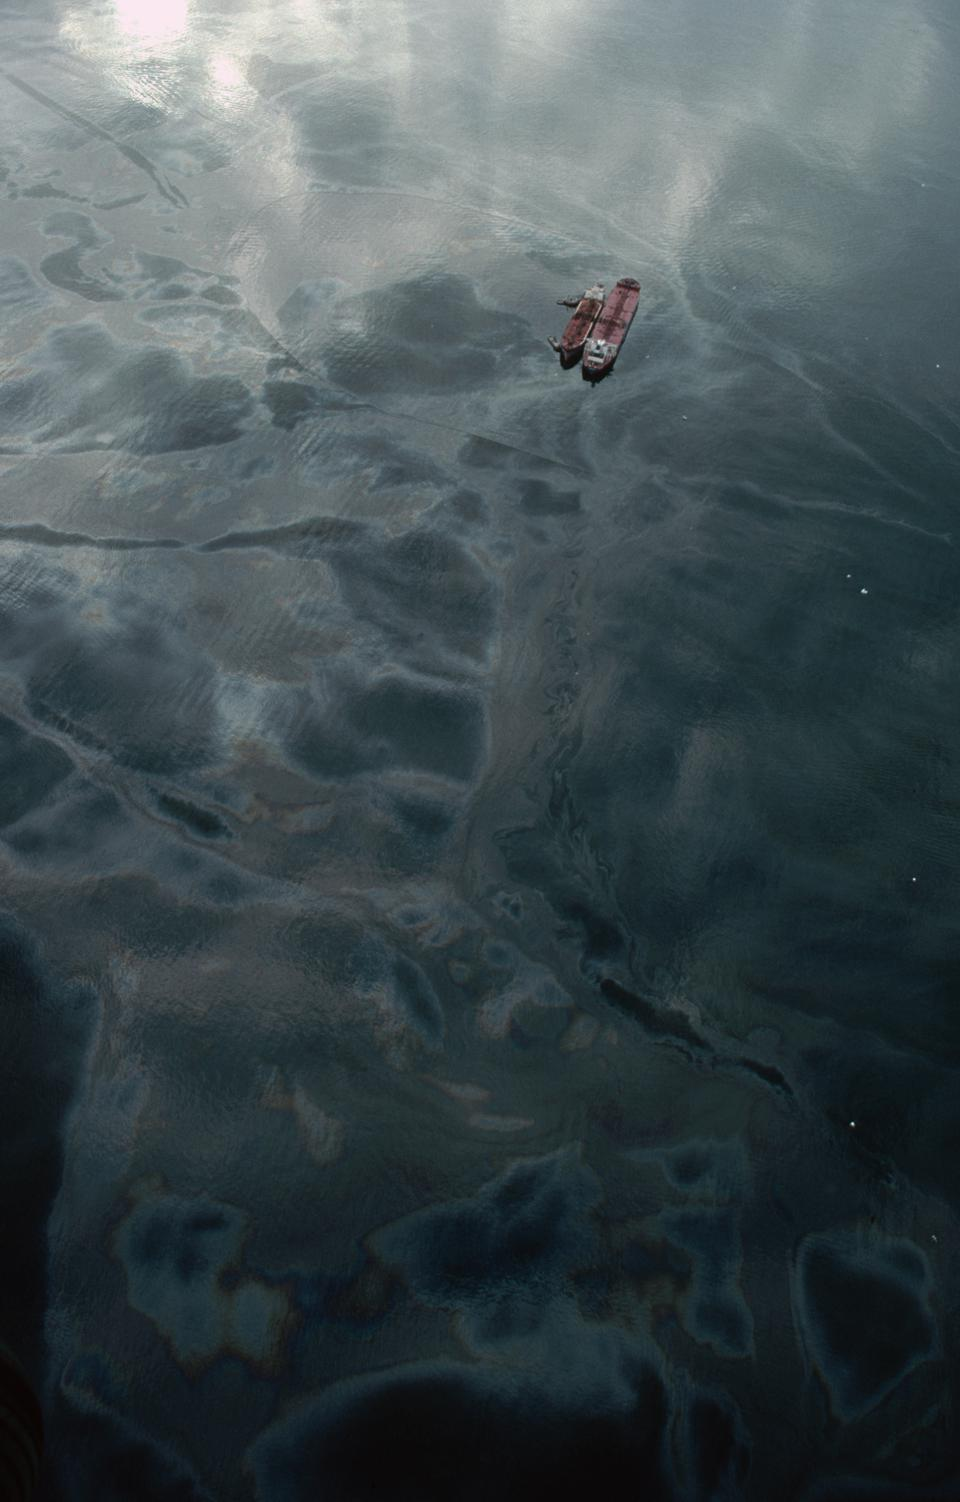 Aerial View of the Exxon Valdez Oil Spill in Prince William Sound